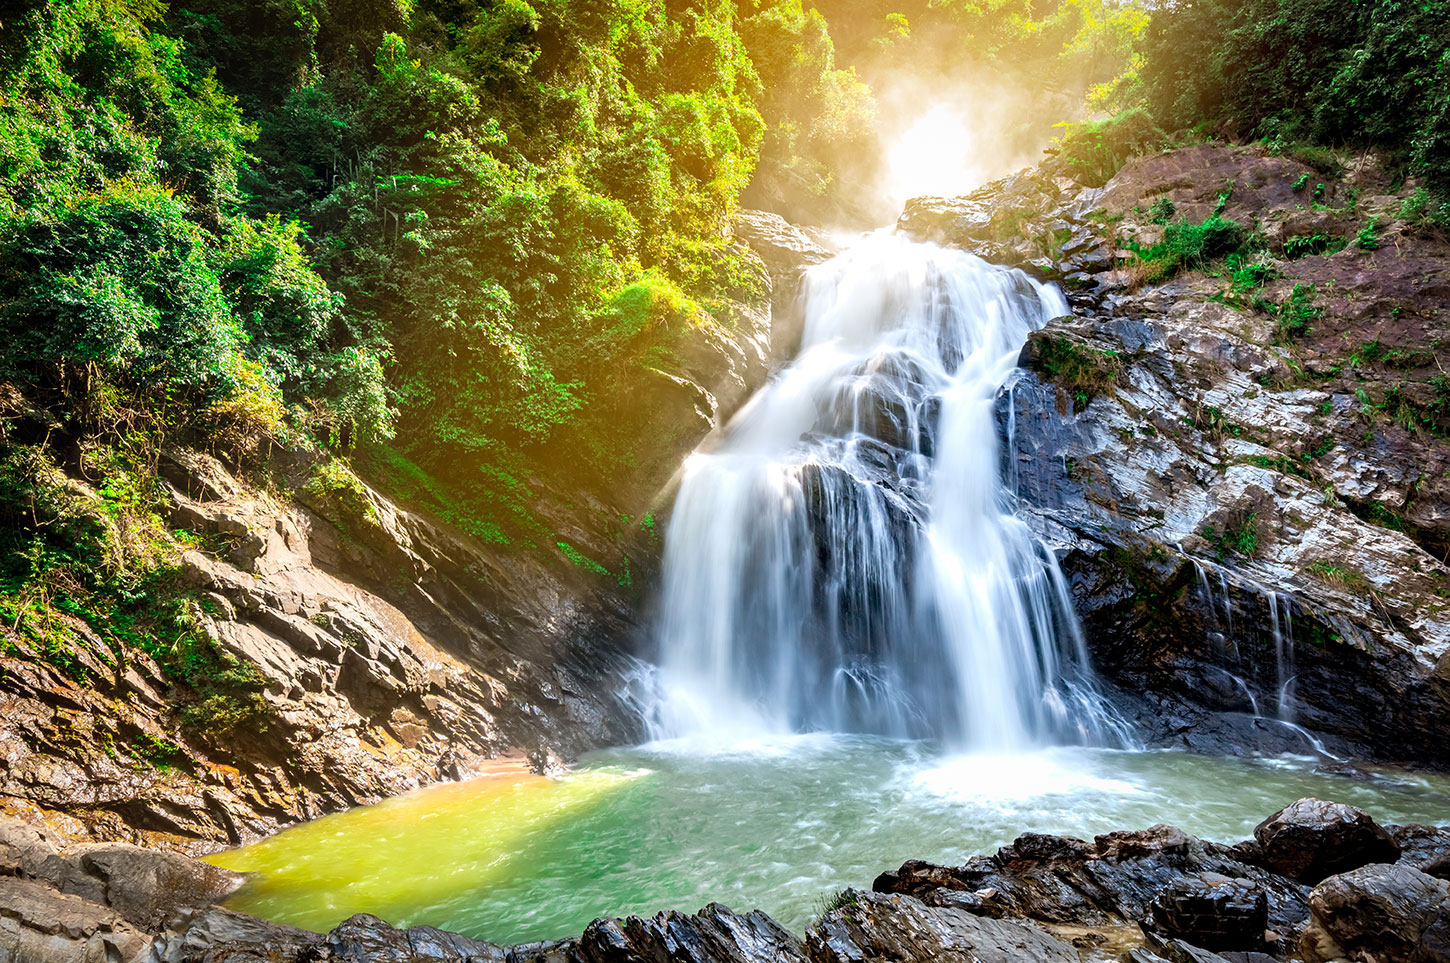 Waterfall with glowing light